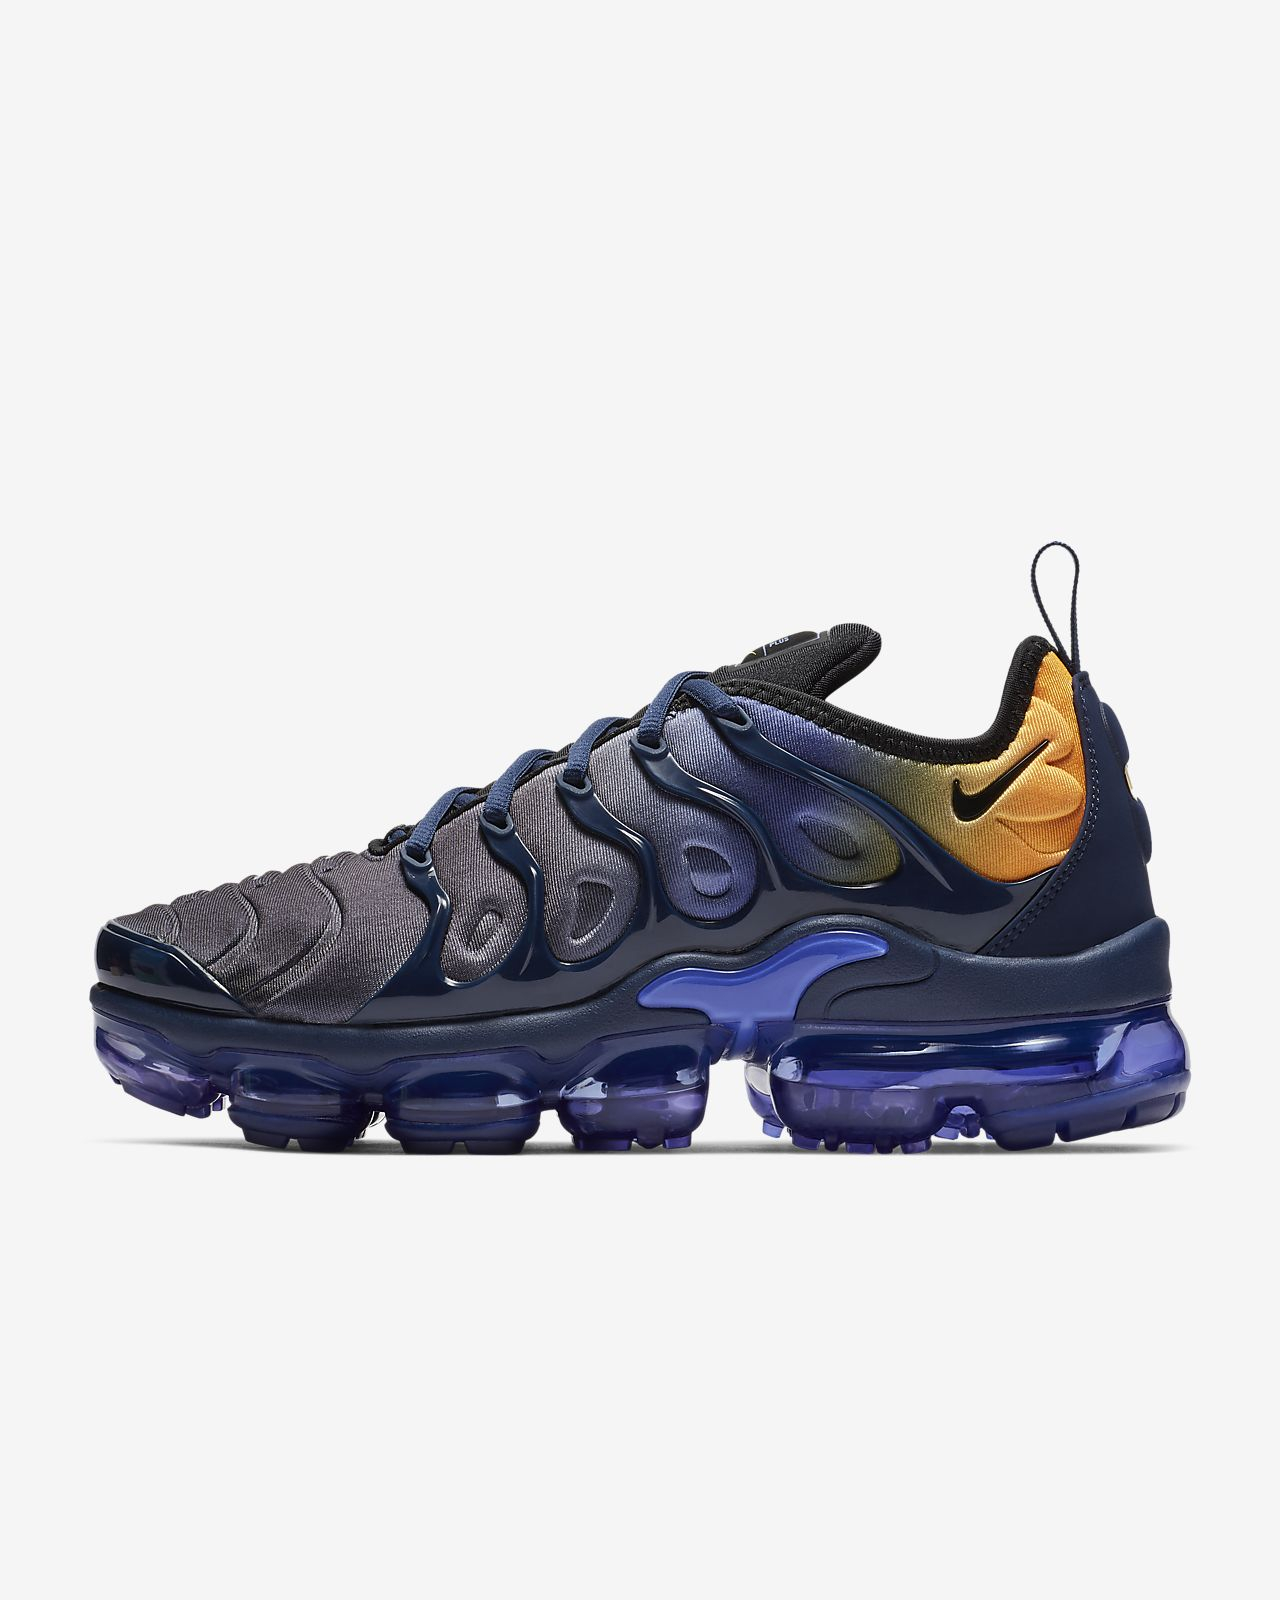 ed91798af4e171 Nike Air VaporMax Plus Women s Shoe. Nike.com